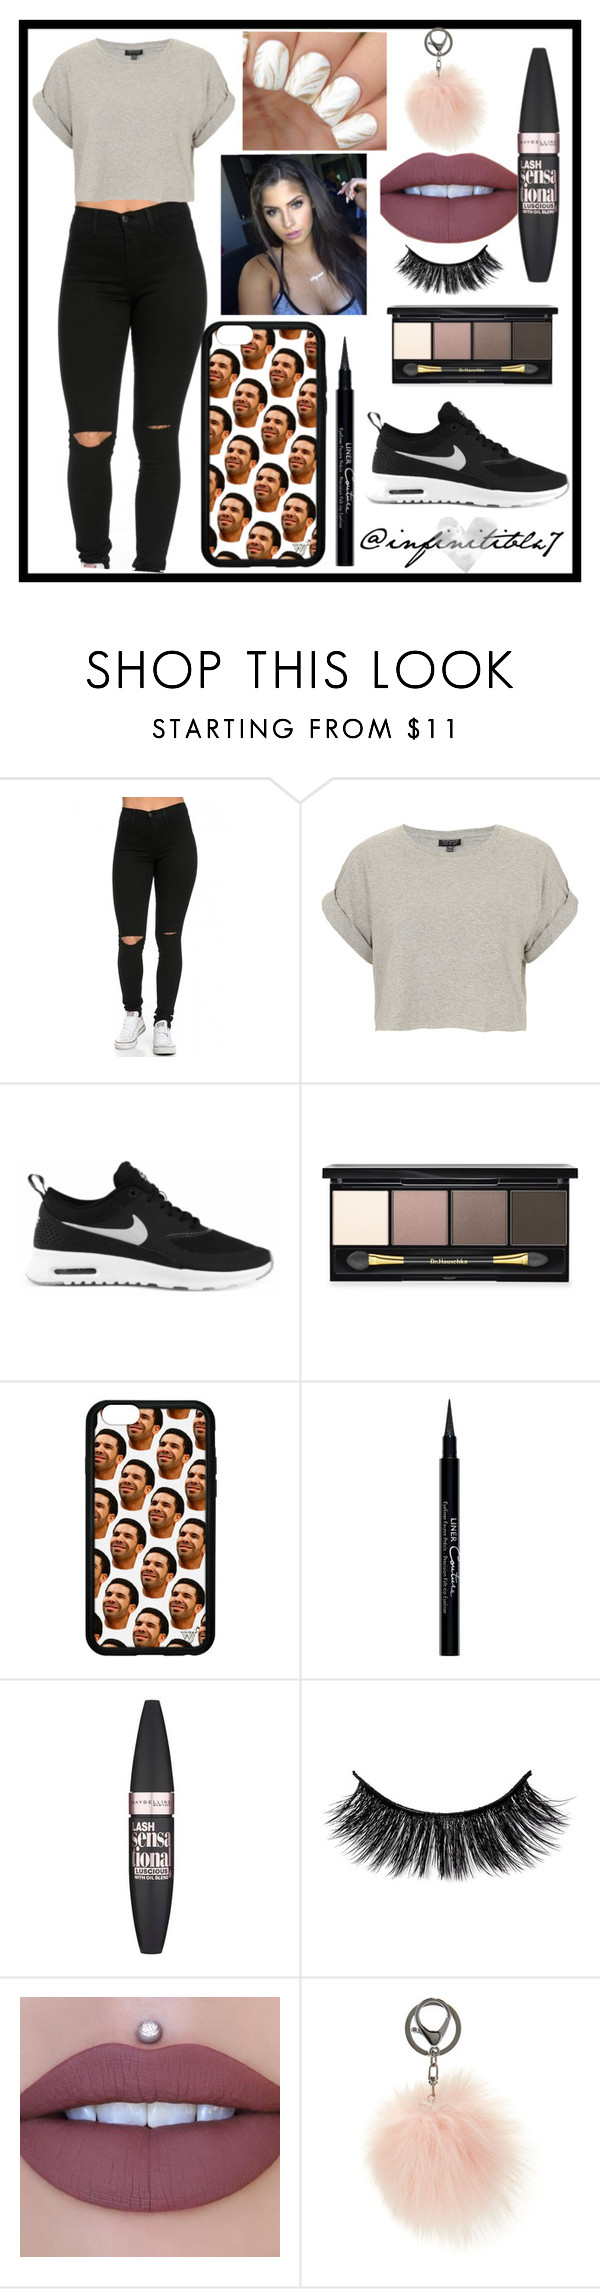 """""""BACK TO SCHOOL"""" by infinitiblx7 ❤ liked on Polyvore featuring Topshop, NIKE, Dr.Hauschka, Givenchy, Maybelline and Adrienne Landau"""